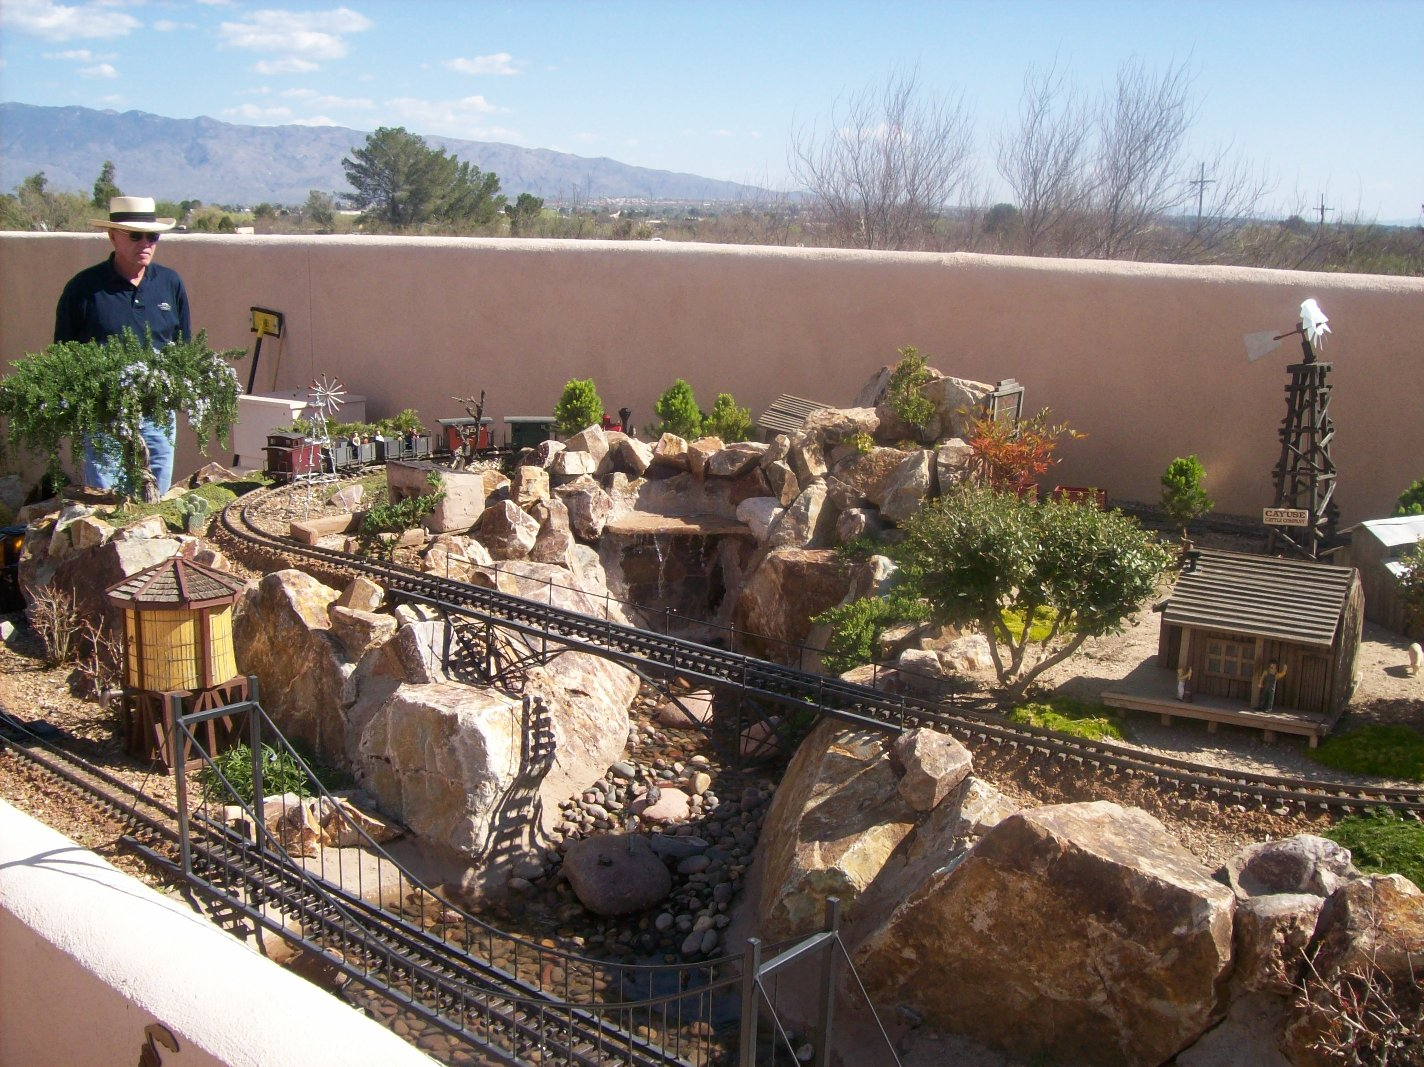 Garden Railroads Tucson Chandler amusement parks new home